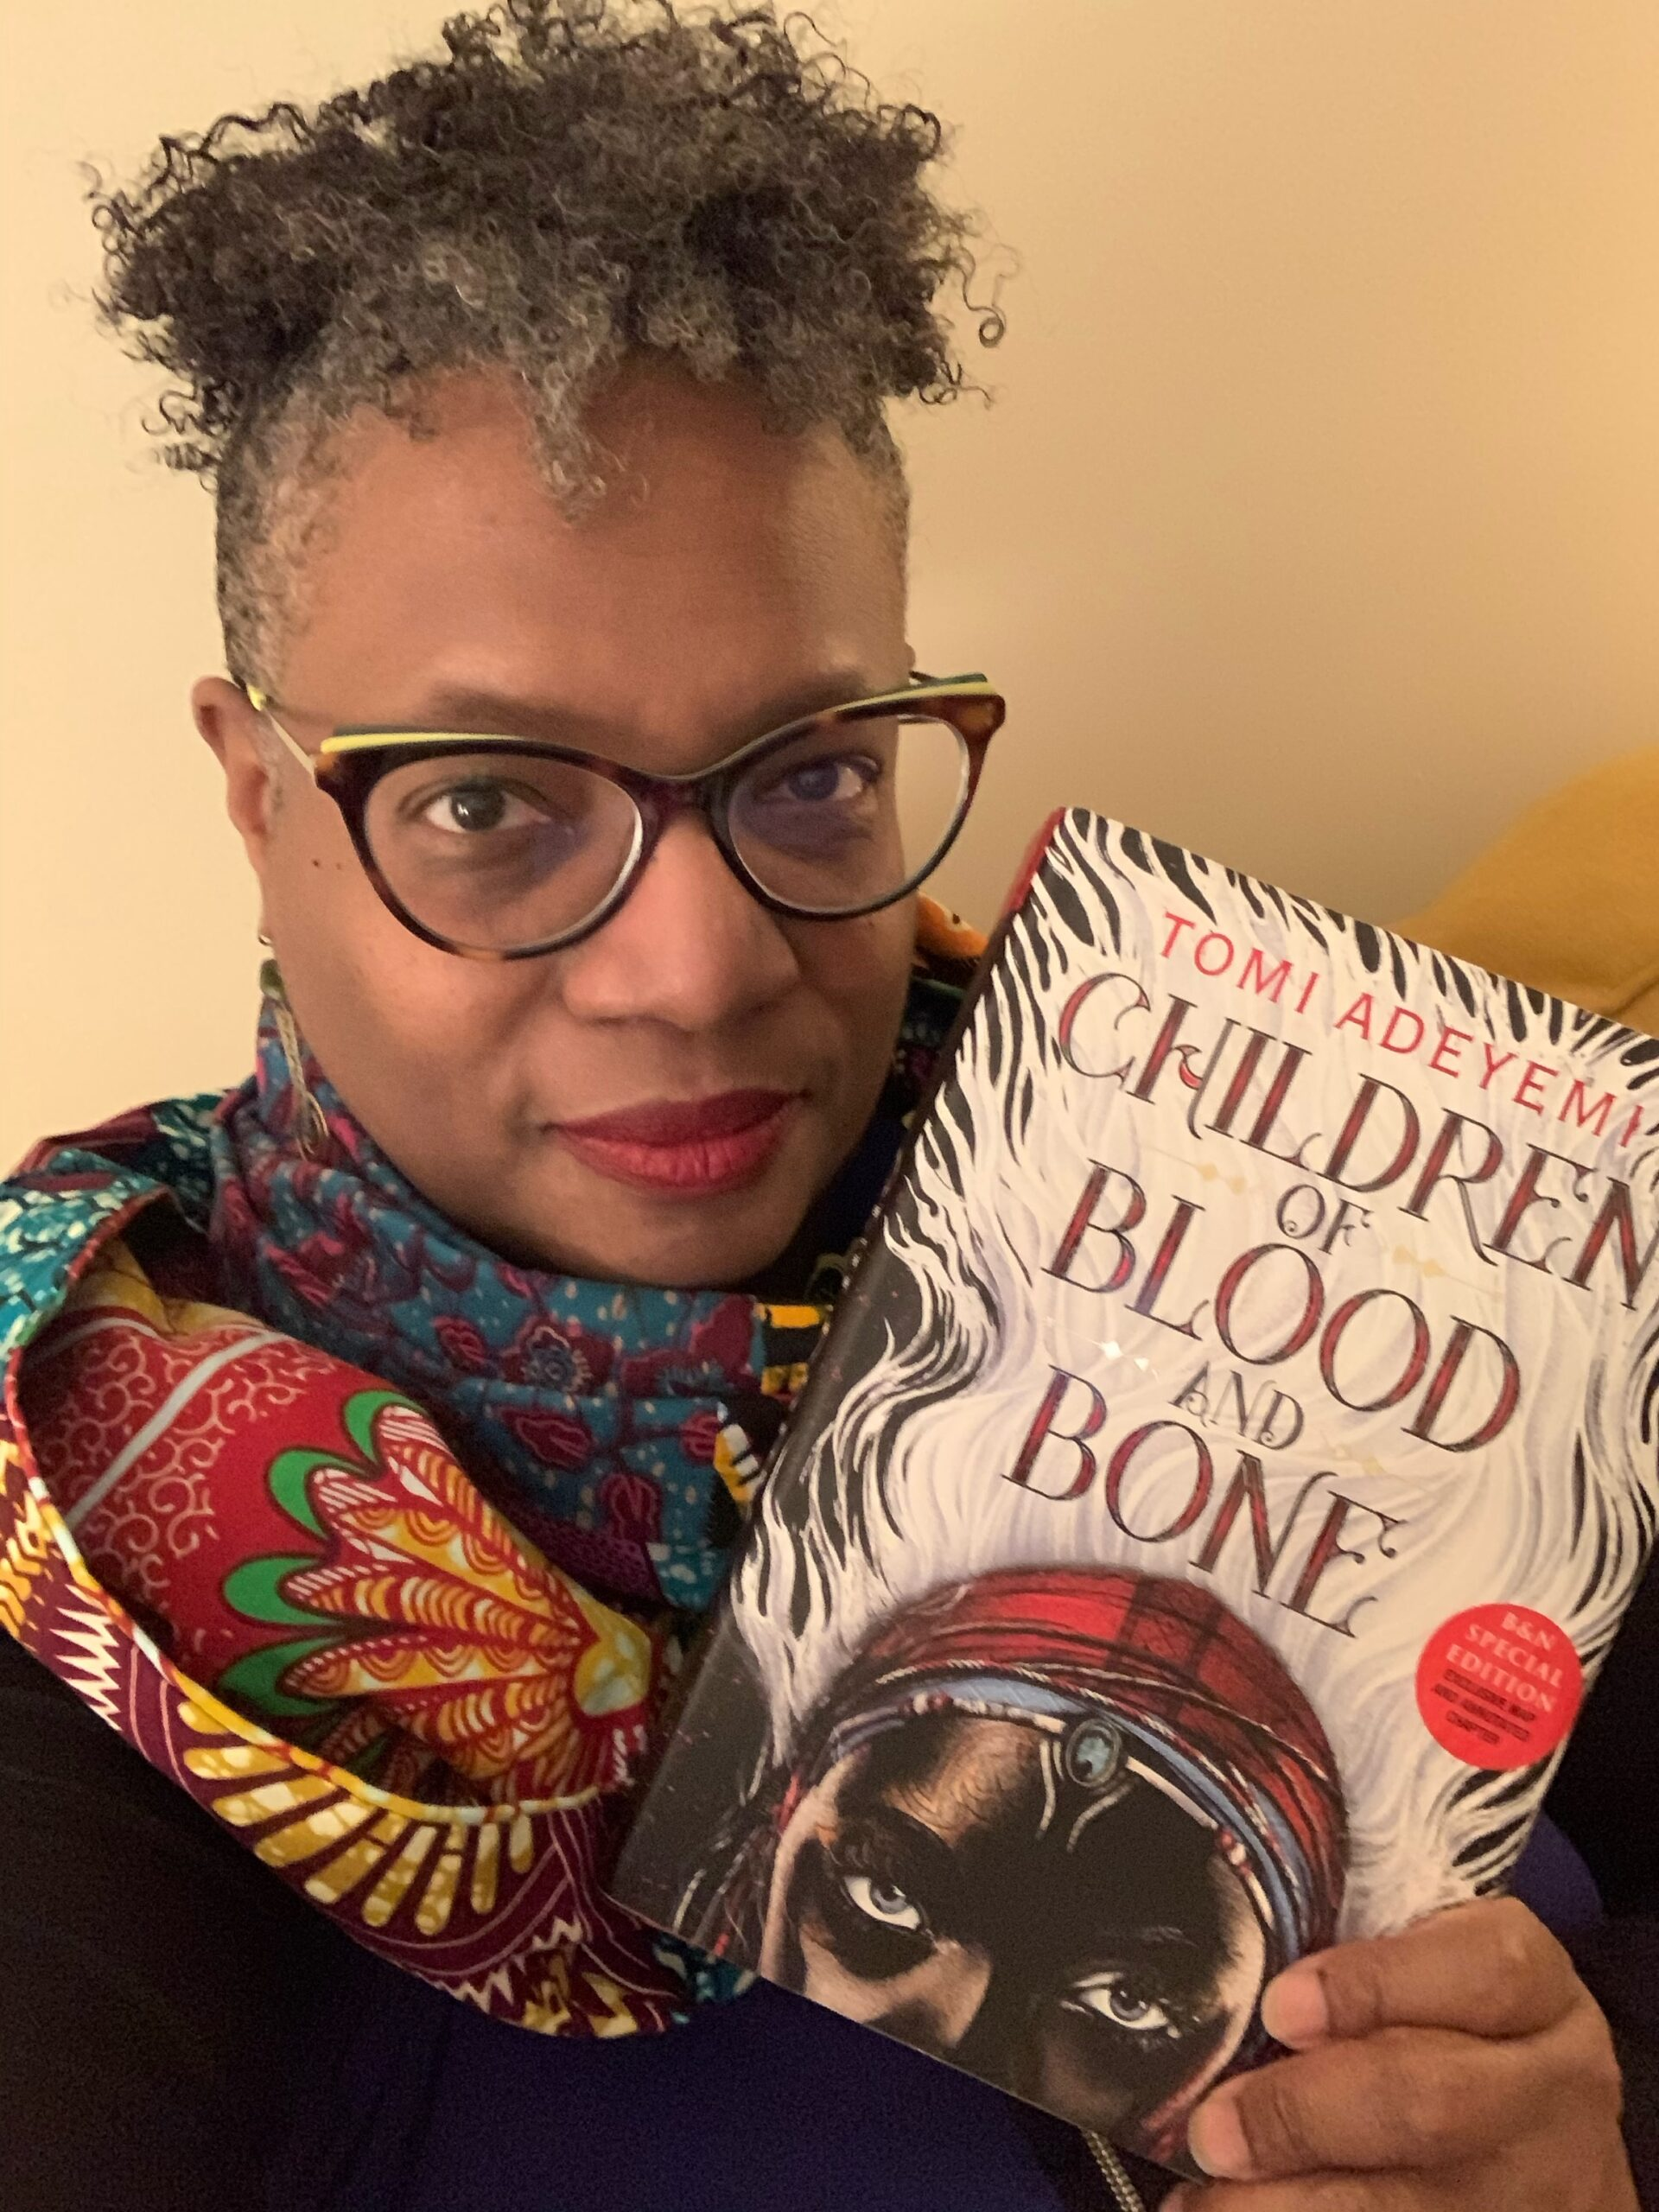 Children of Blood and Bone Erika Saunders